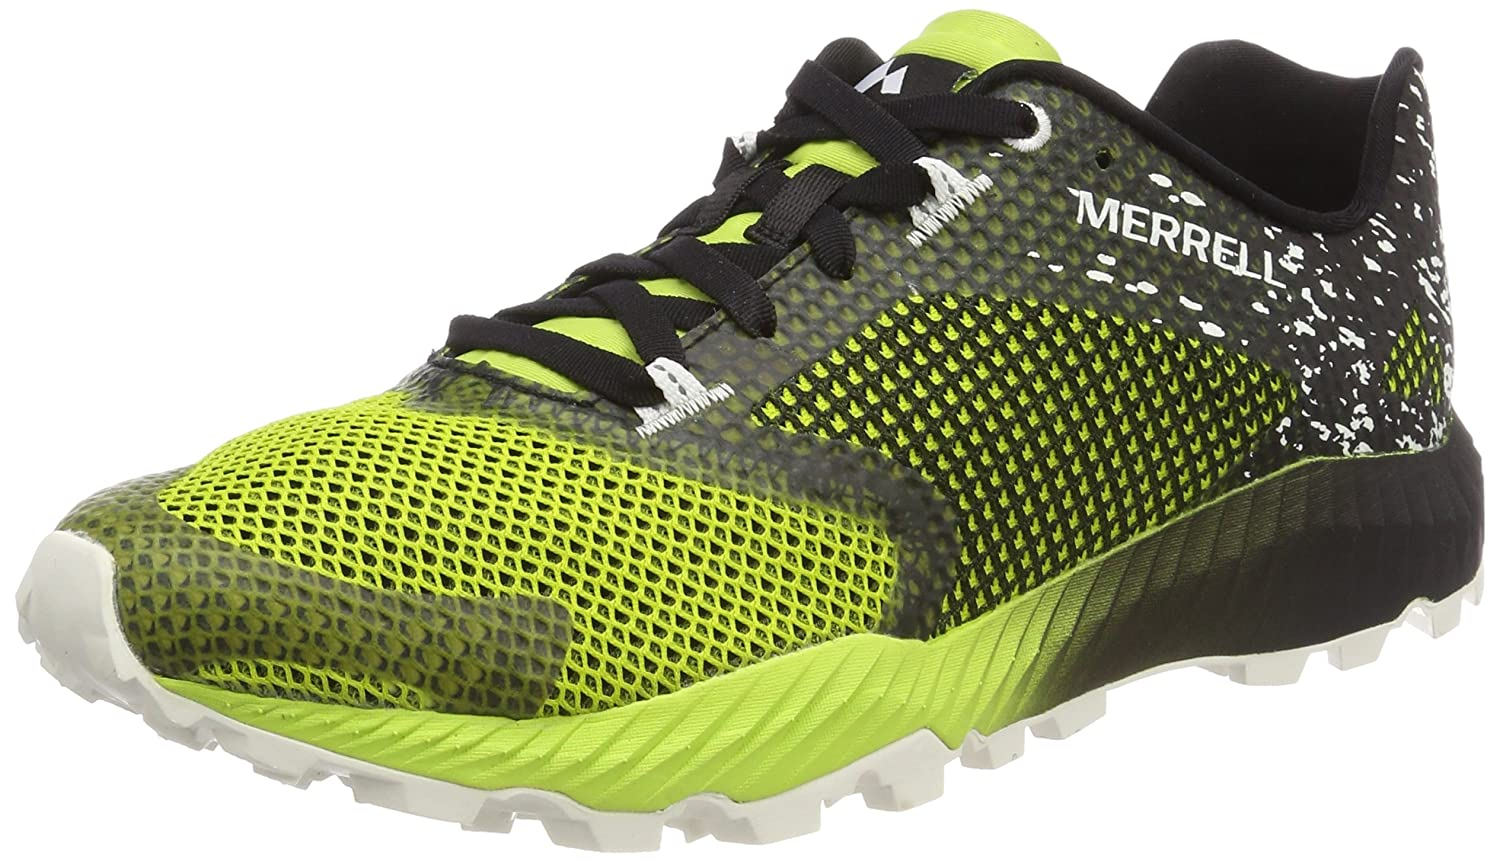 TALLA 47 EU. Merrell All out Crush 2, Zapatillas de Running para Asfalto para Hombre